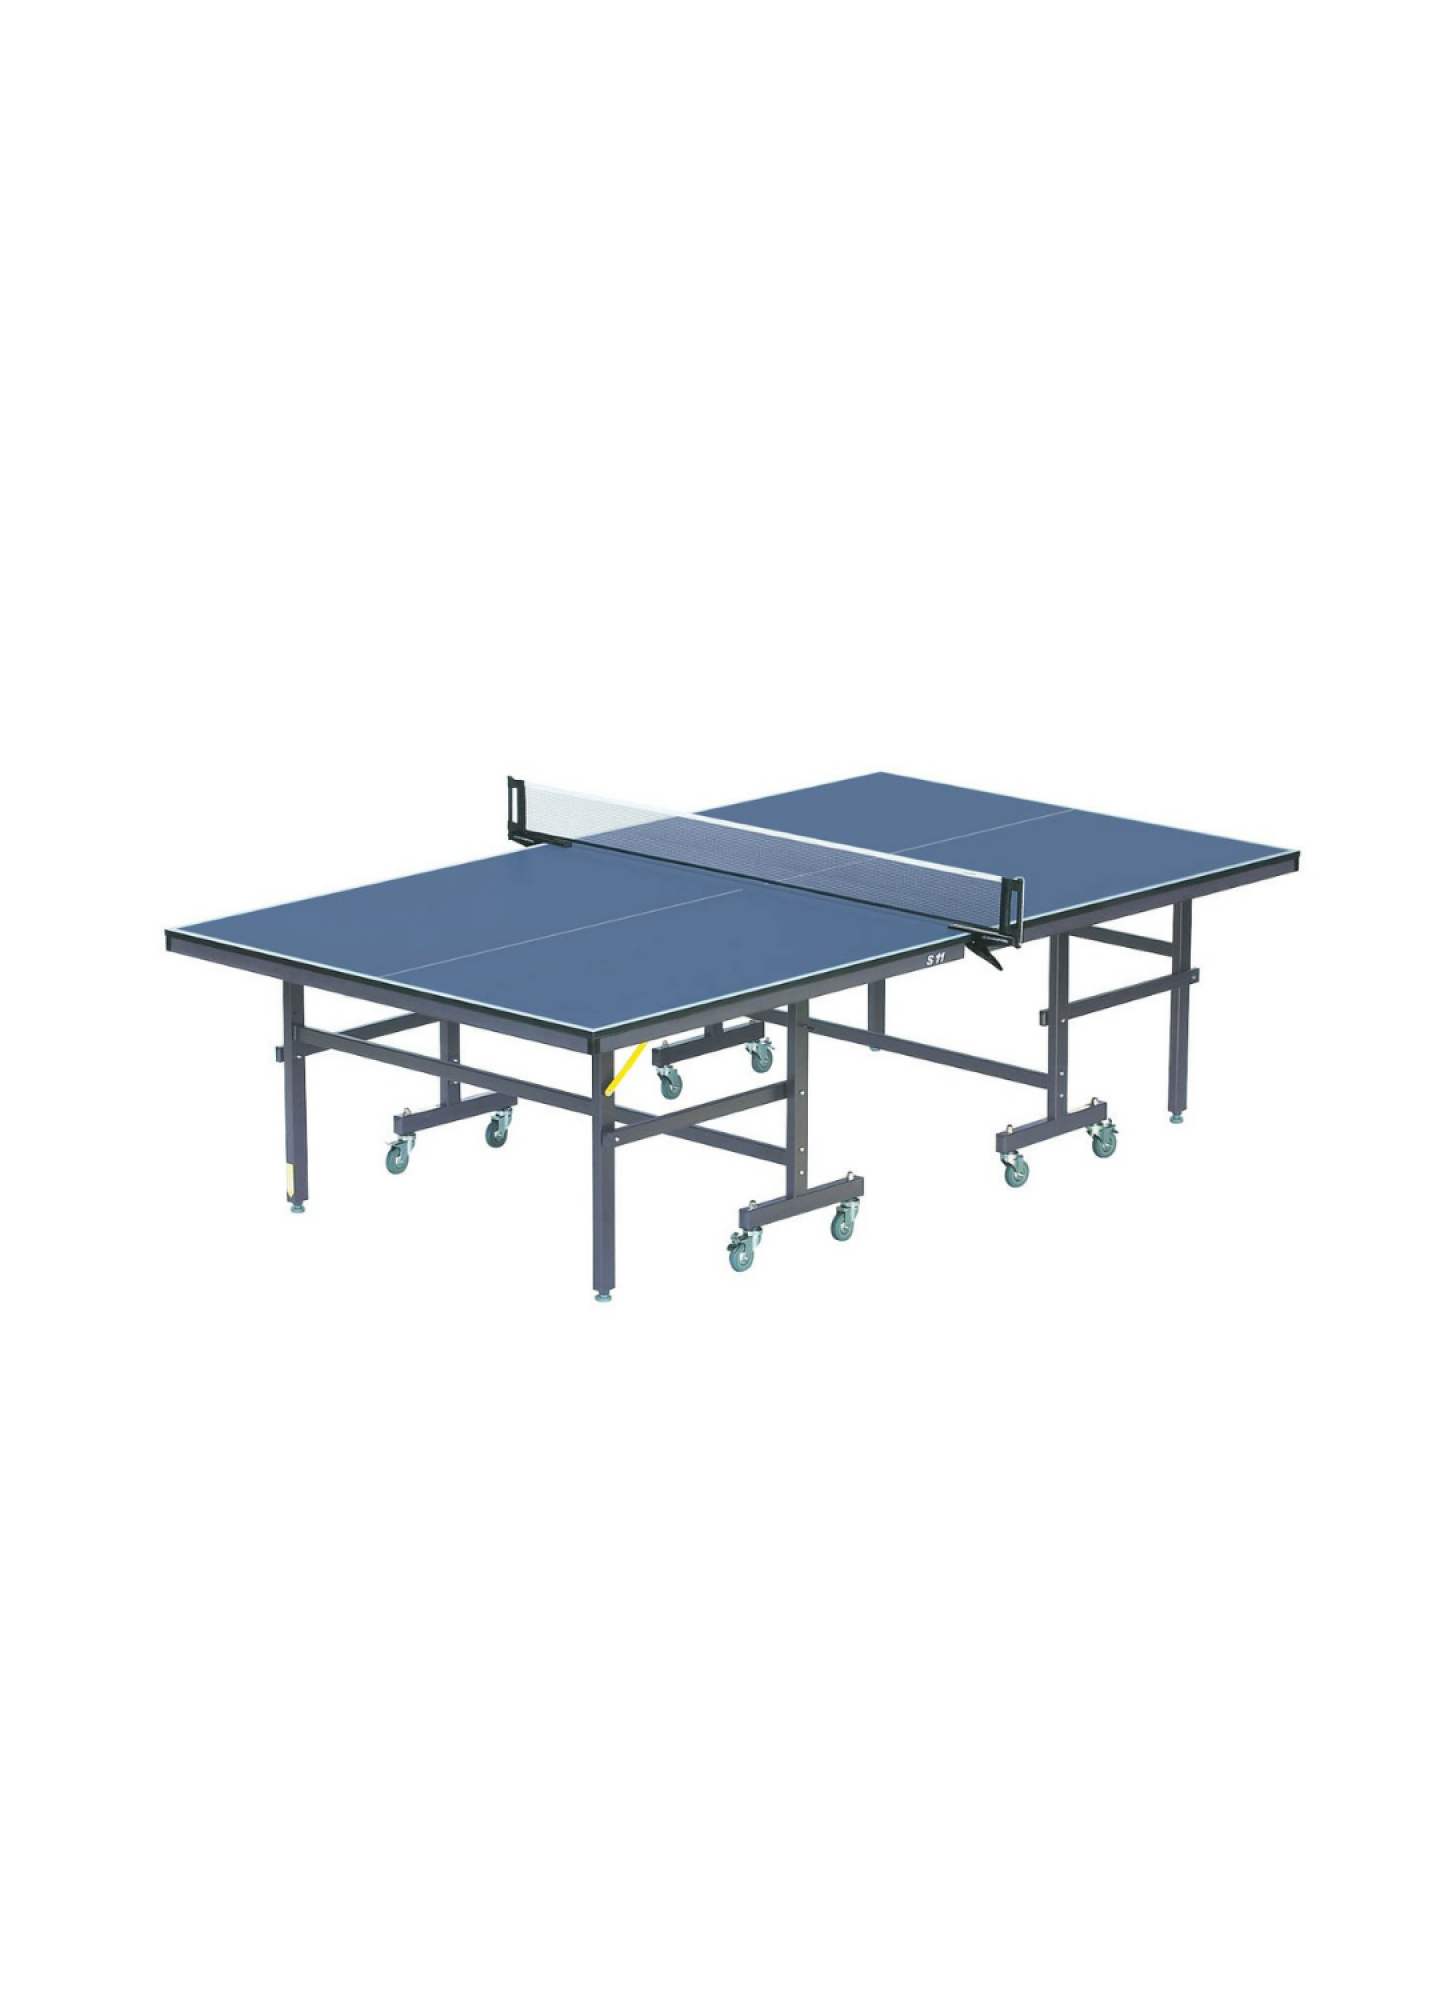 CHAMPION TABLE TENNIS TABLE